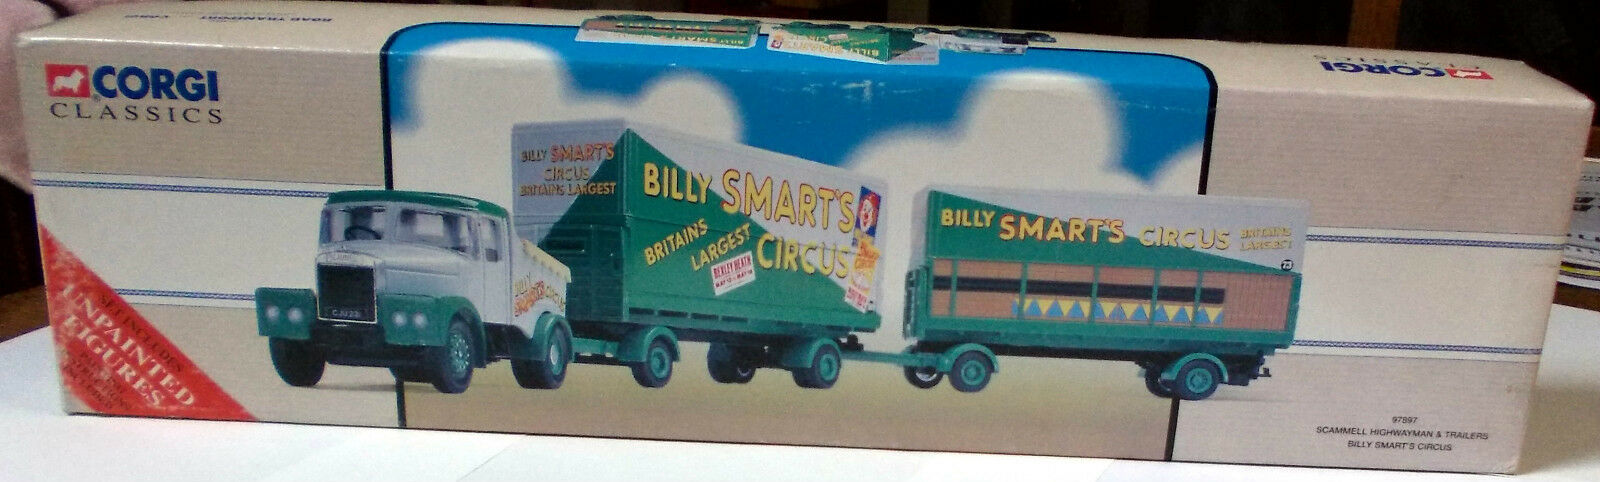 Corgi 1 50 - Scammell Highwayman & Trailers Billy Smart's Circus + unpainted fig